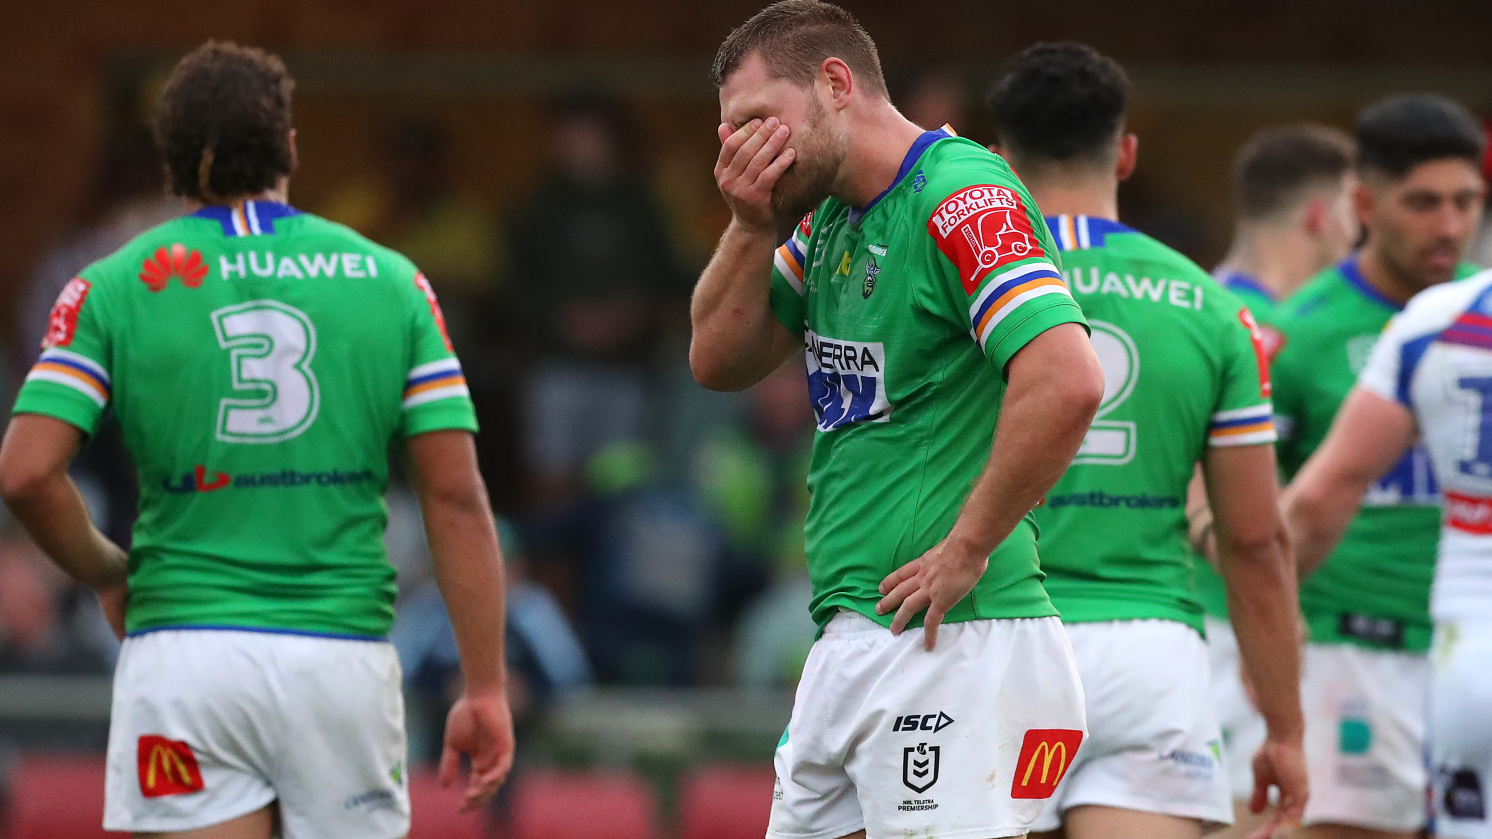 Canberra Raiders throw away second-half lead, giving Newcastle Knights vital win